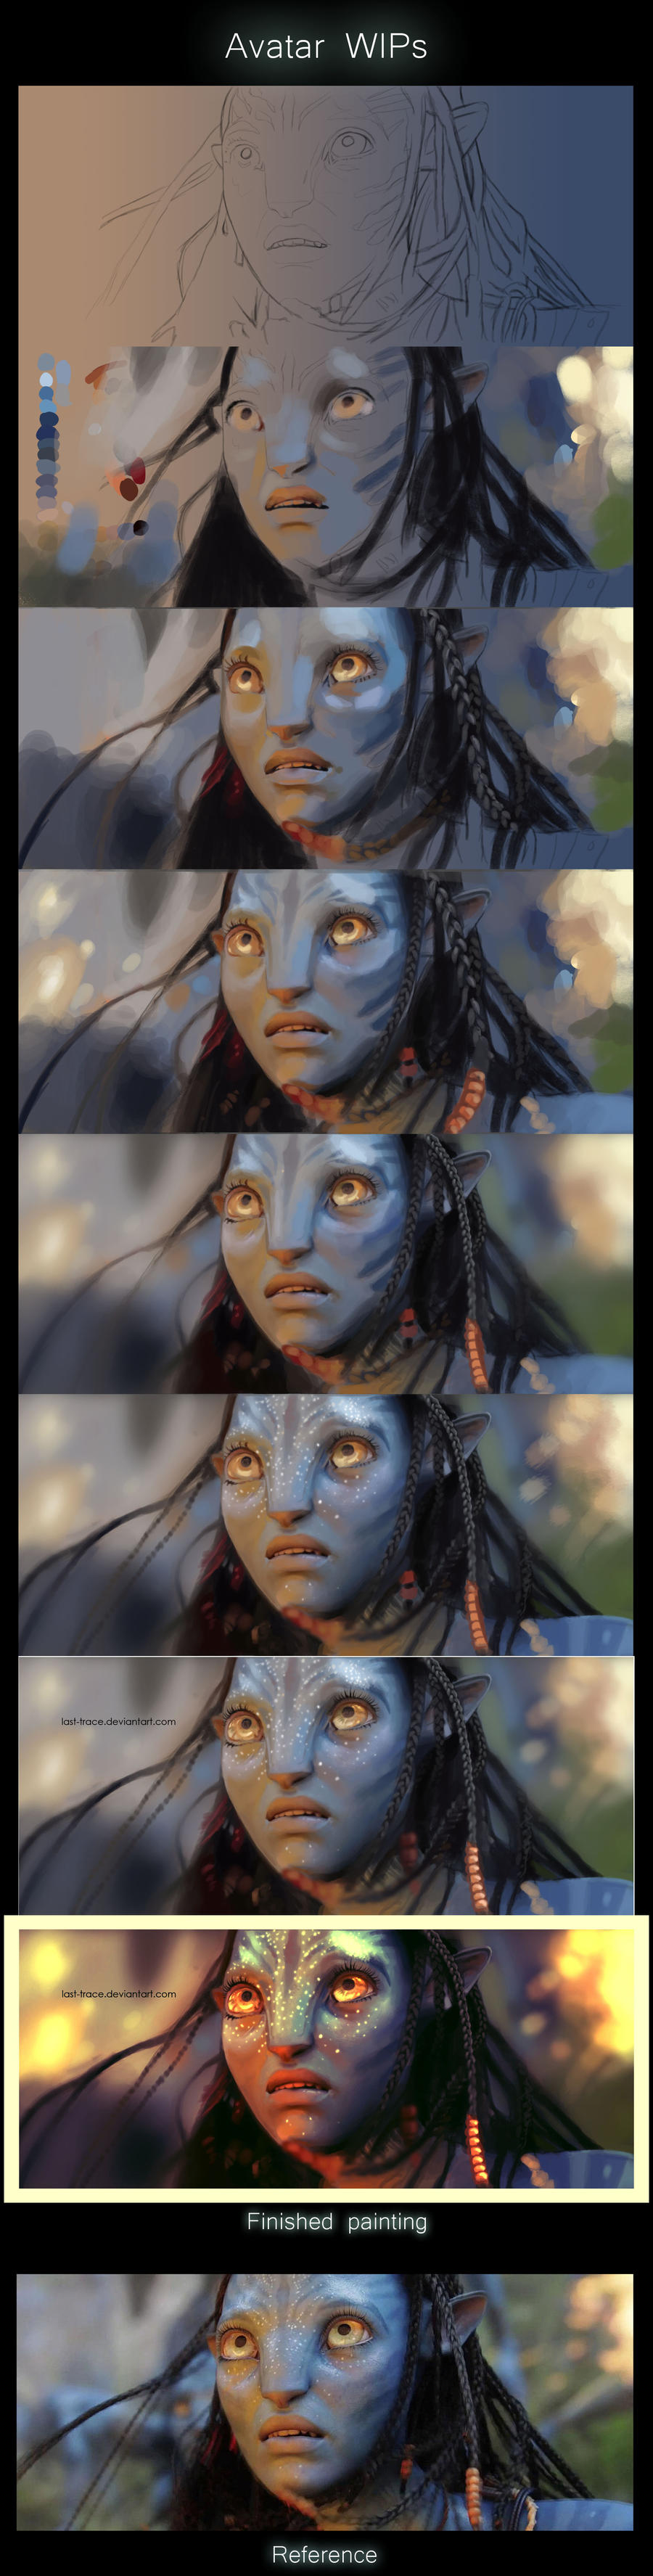 Avatar Neytiri wip stages by last-trace